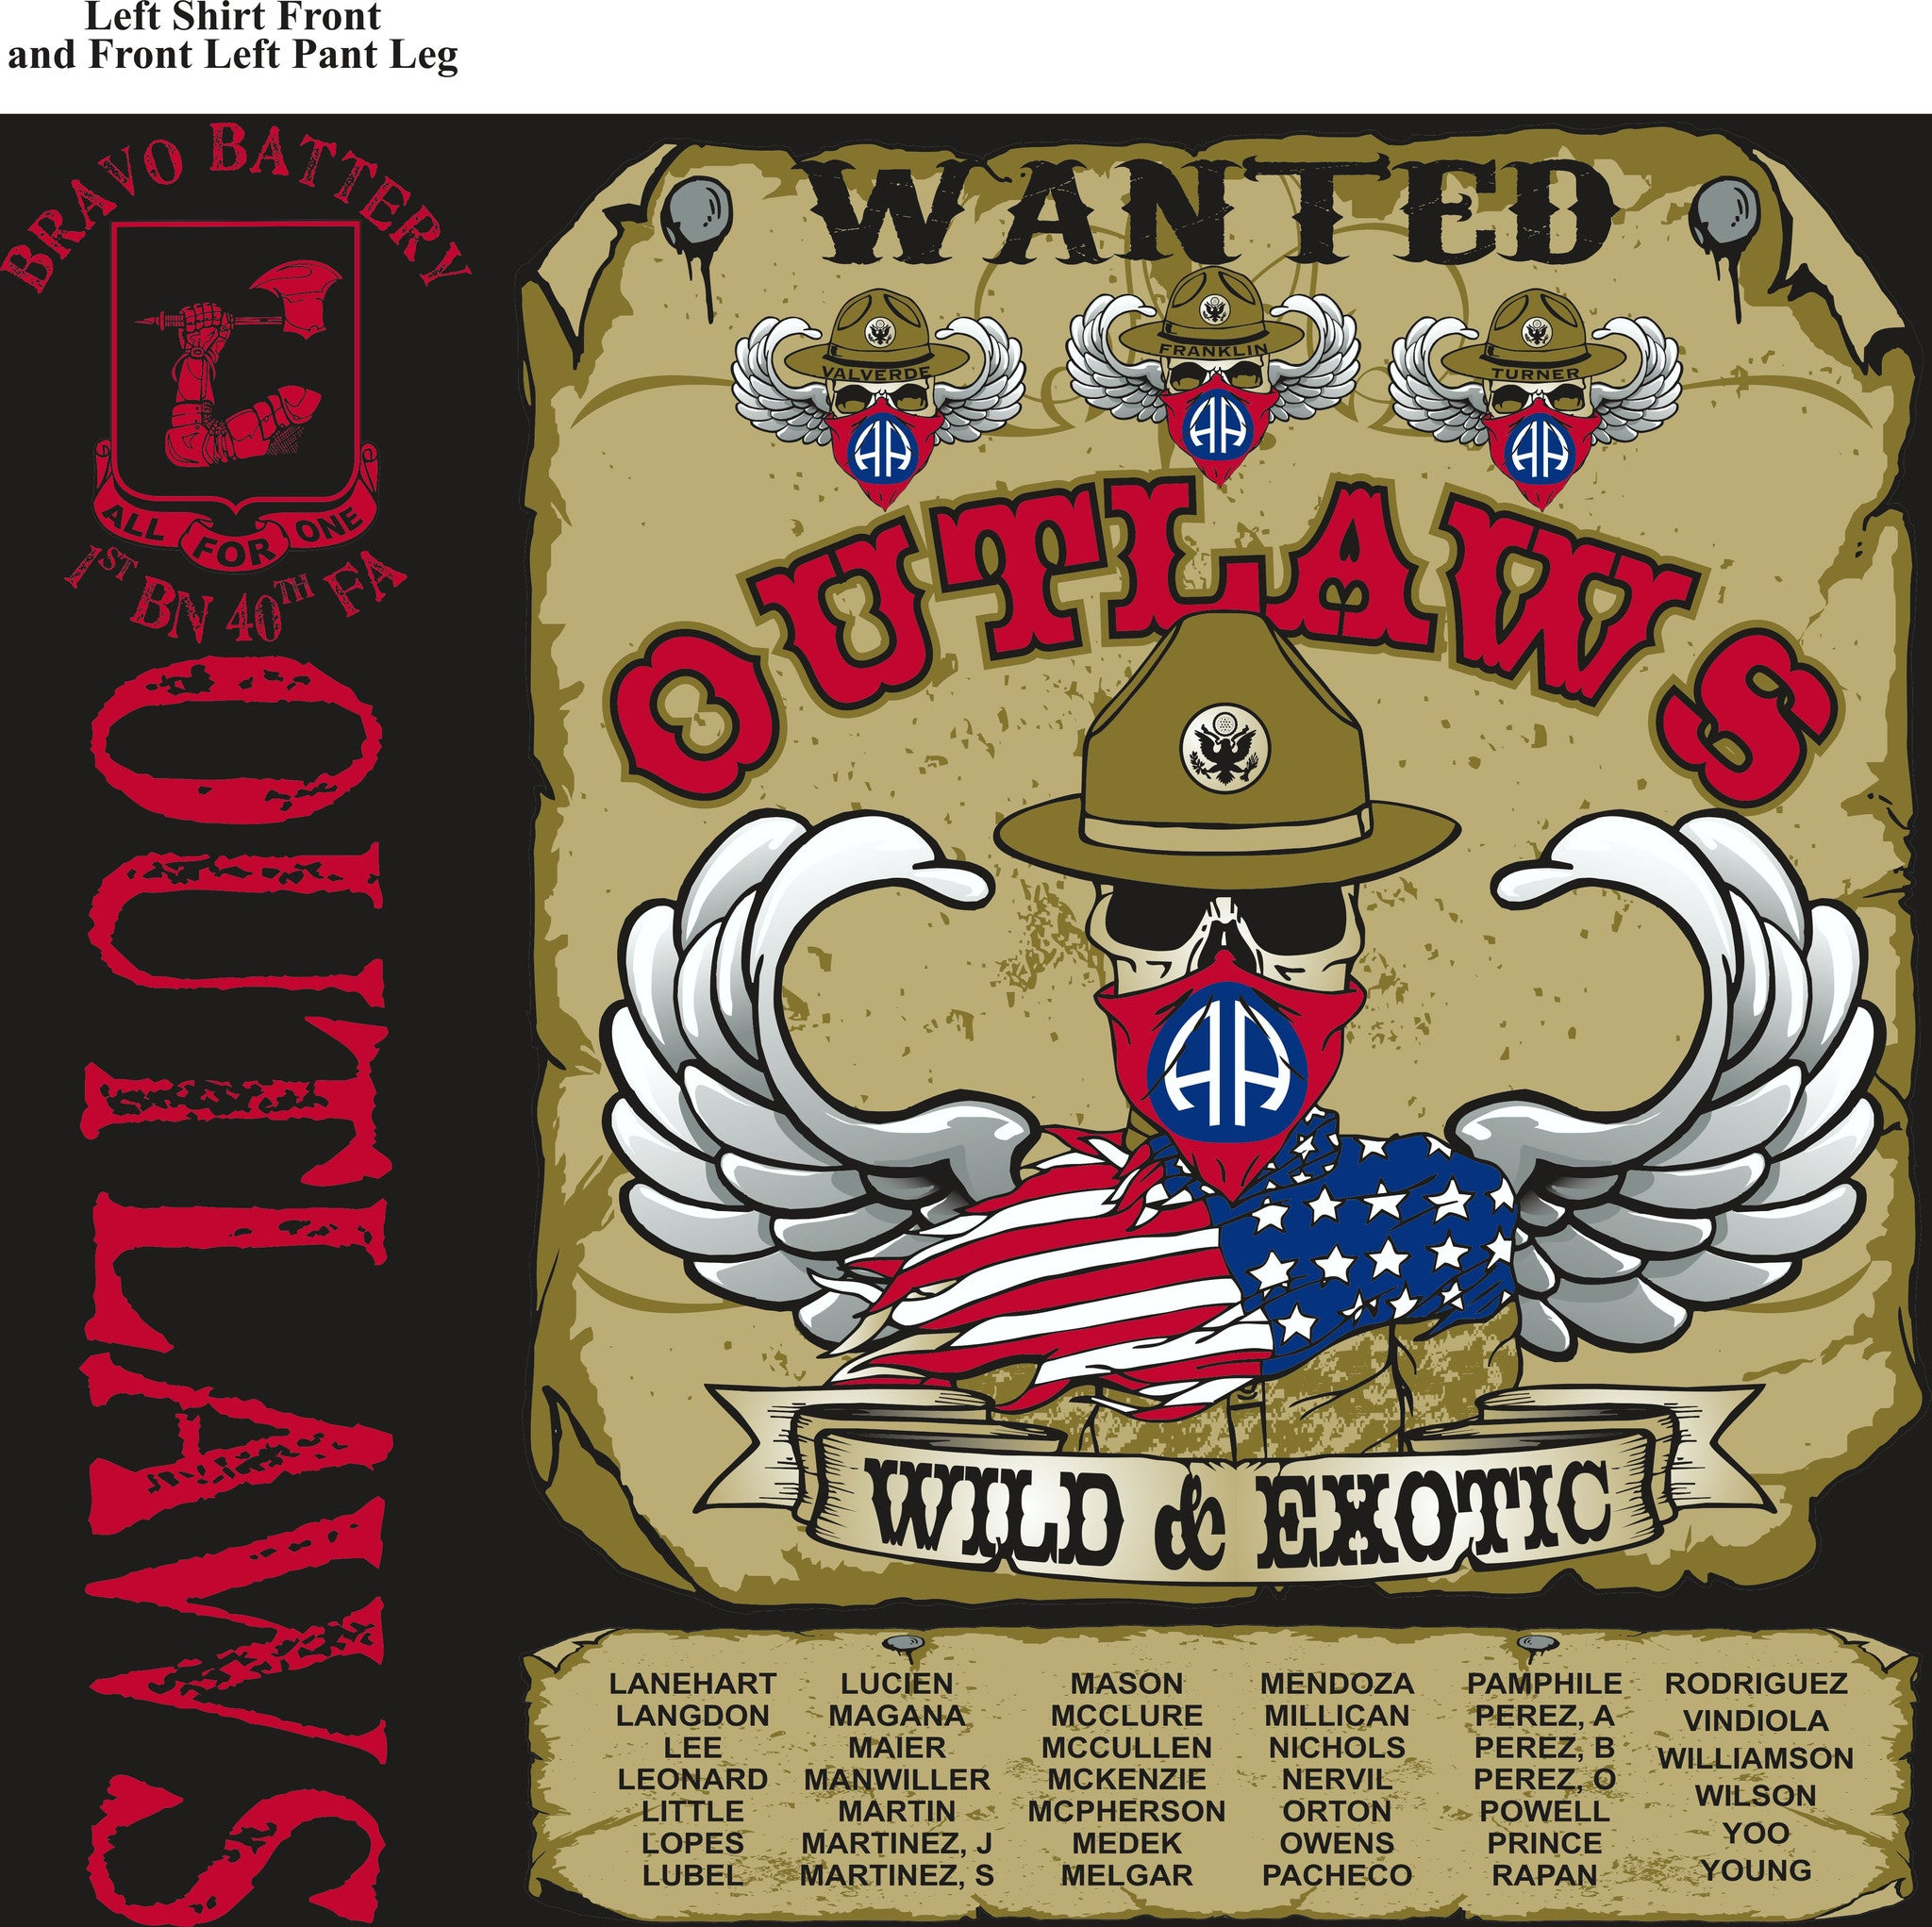 Platoon Shirts BRAVO 1st 40th OUTLAWS APR 2015